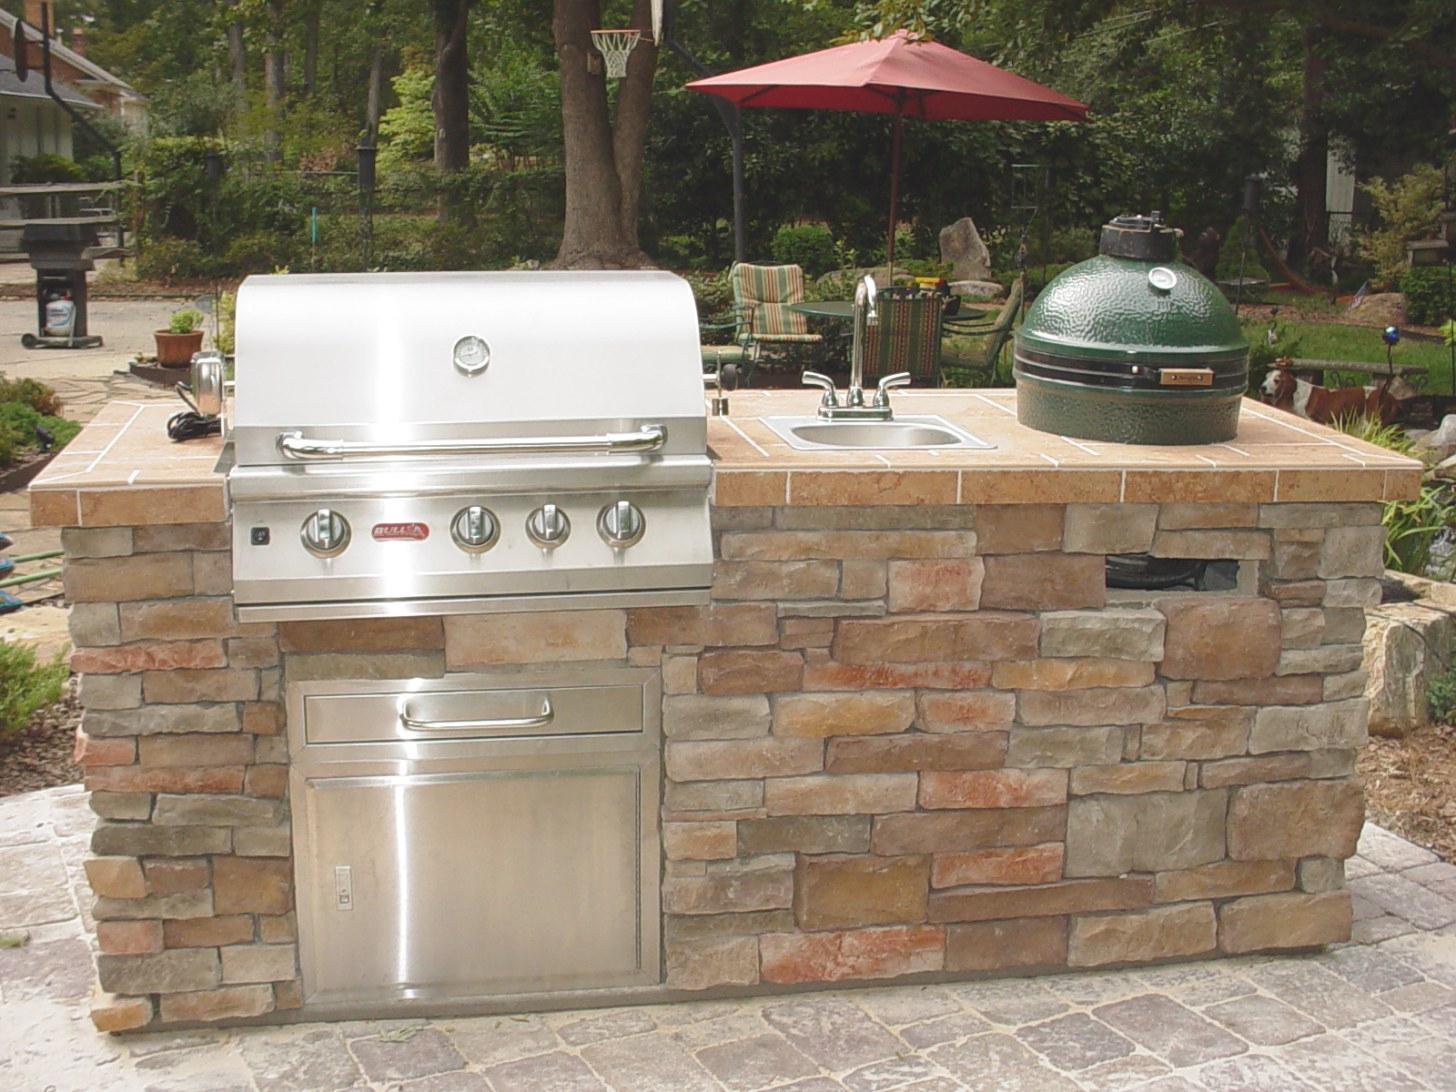 Diy Home Decorating: Big Green Egg Outdoor Kitchen for Big Green Egg Outdoor Kitchen